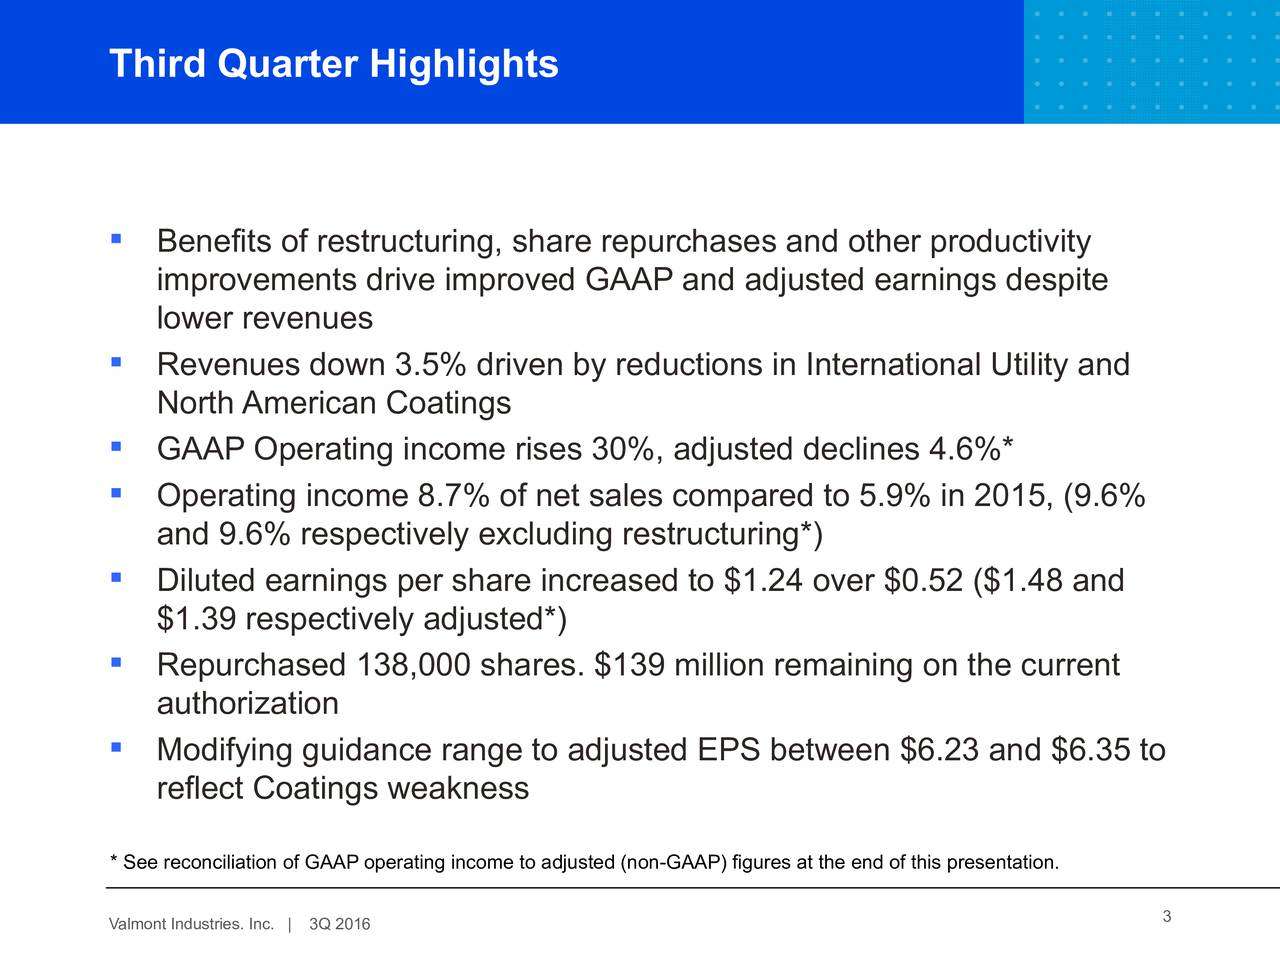 Benefits of restructuring, share repurchases and other productivity improvements drive improved GAAP and adjusted earnings despite lower revenues Revenues down 3.5% driven by reductions in International Utility and North American Coatings GAAP Operating income rises 30%, adjusted declines 4.6%* Operating income 8.7% of net sales compared to 5.9% in 2015, (9.6% and 9.6% respectively excluding restructuring*) Diluted earnings per share increased to $1.24 over $0.52 ($1.48 and $1.39 respectively adjusted*) Repurchased 138,000 shares. $139 million remaining on the current authorization Modifying guidance range to adjusted EPS between $6.23 and $6.35 to reflect Coatings weakness * See reconciliation of GAAP operating income to adjusted (non-GAAP) figures at the end of this presentation. Valmont Industr3Q 2016c. | 3